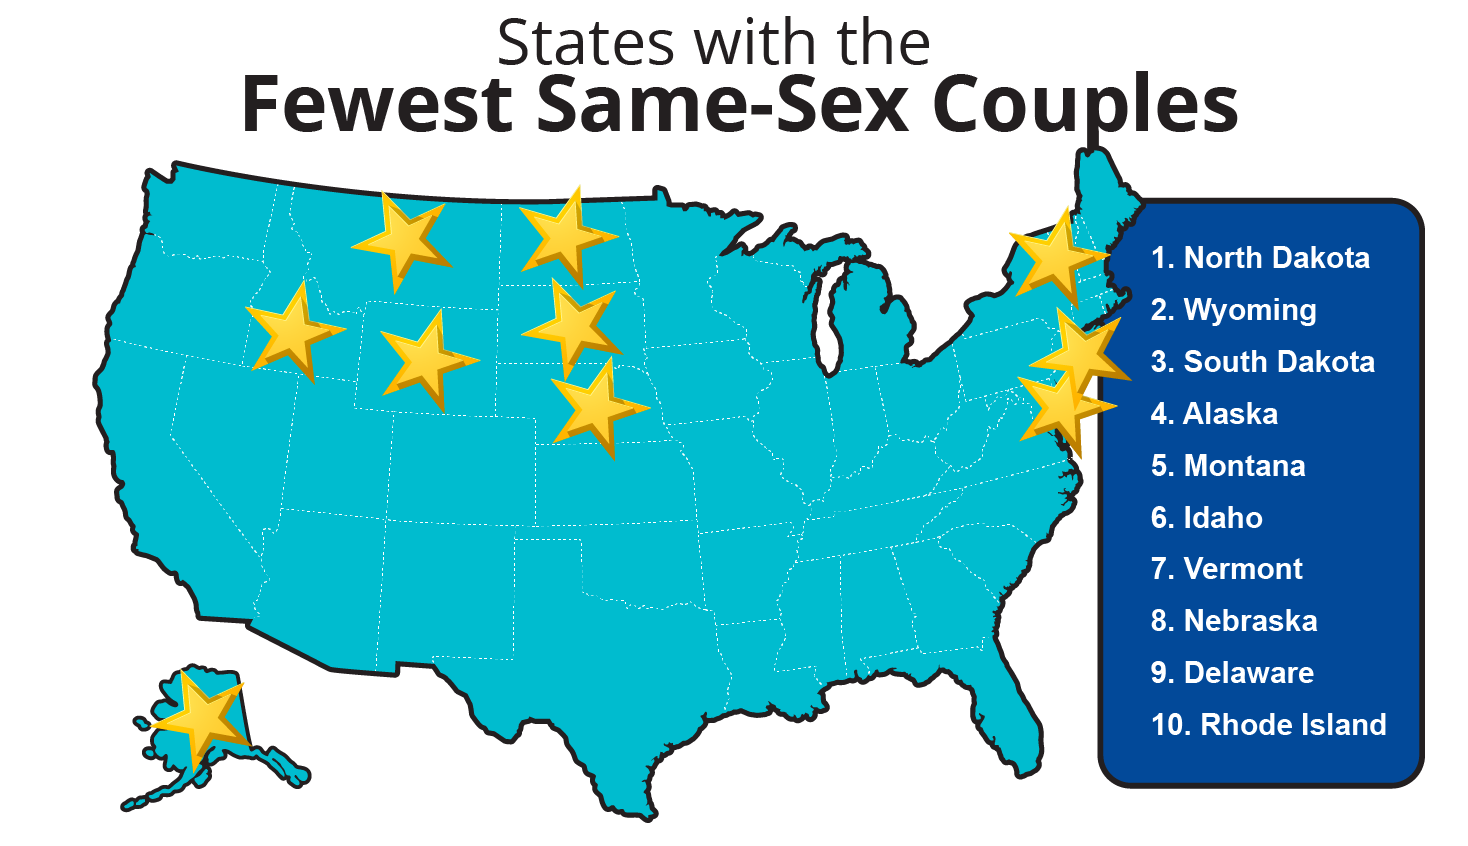 States with the fewest same-sex couples.